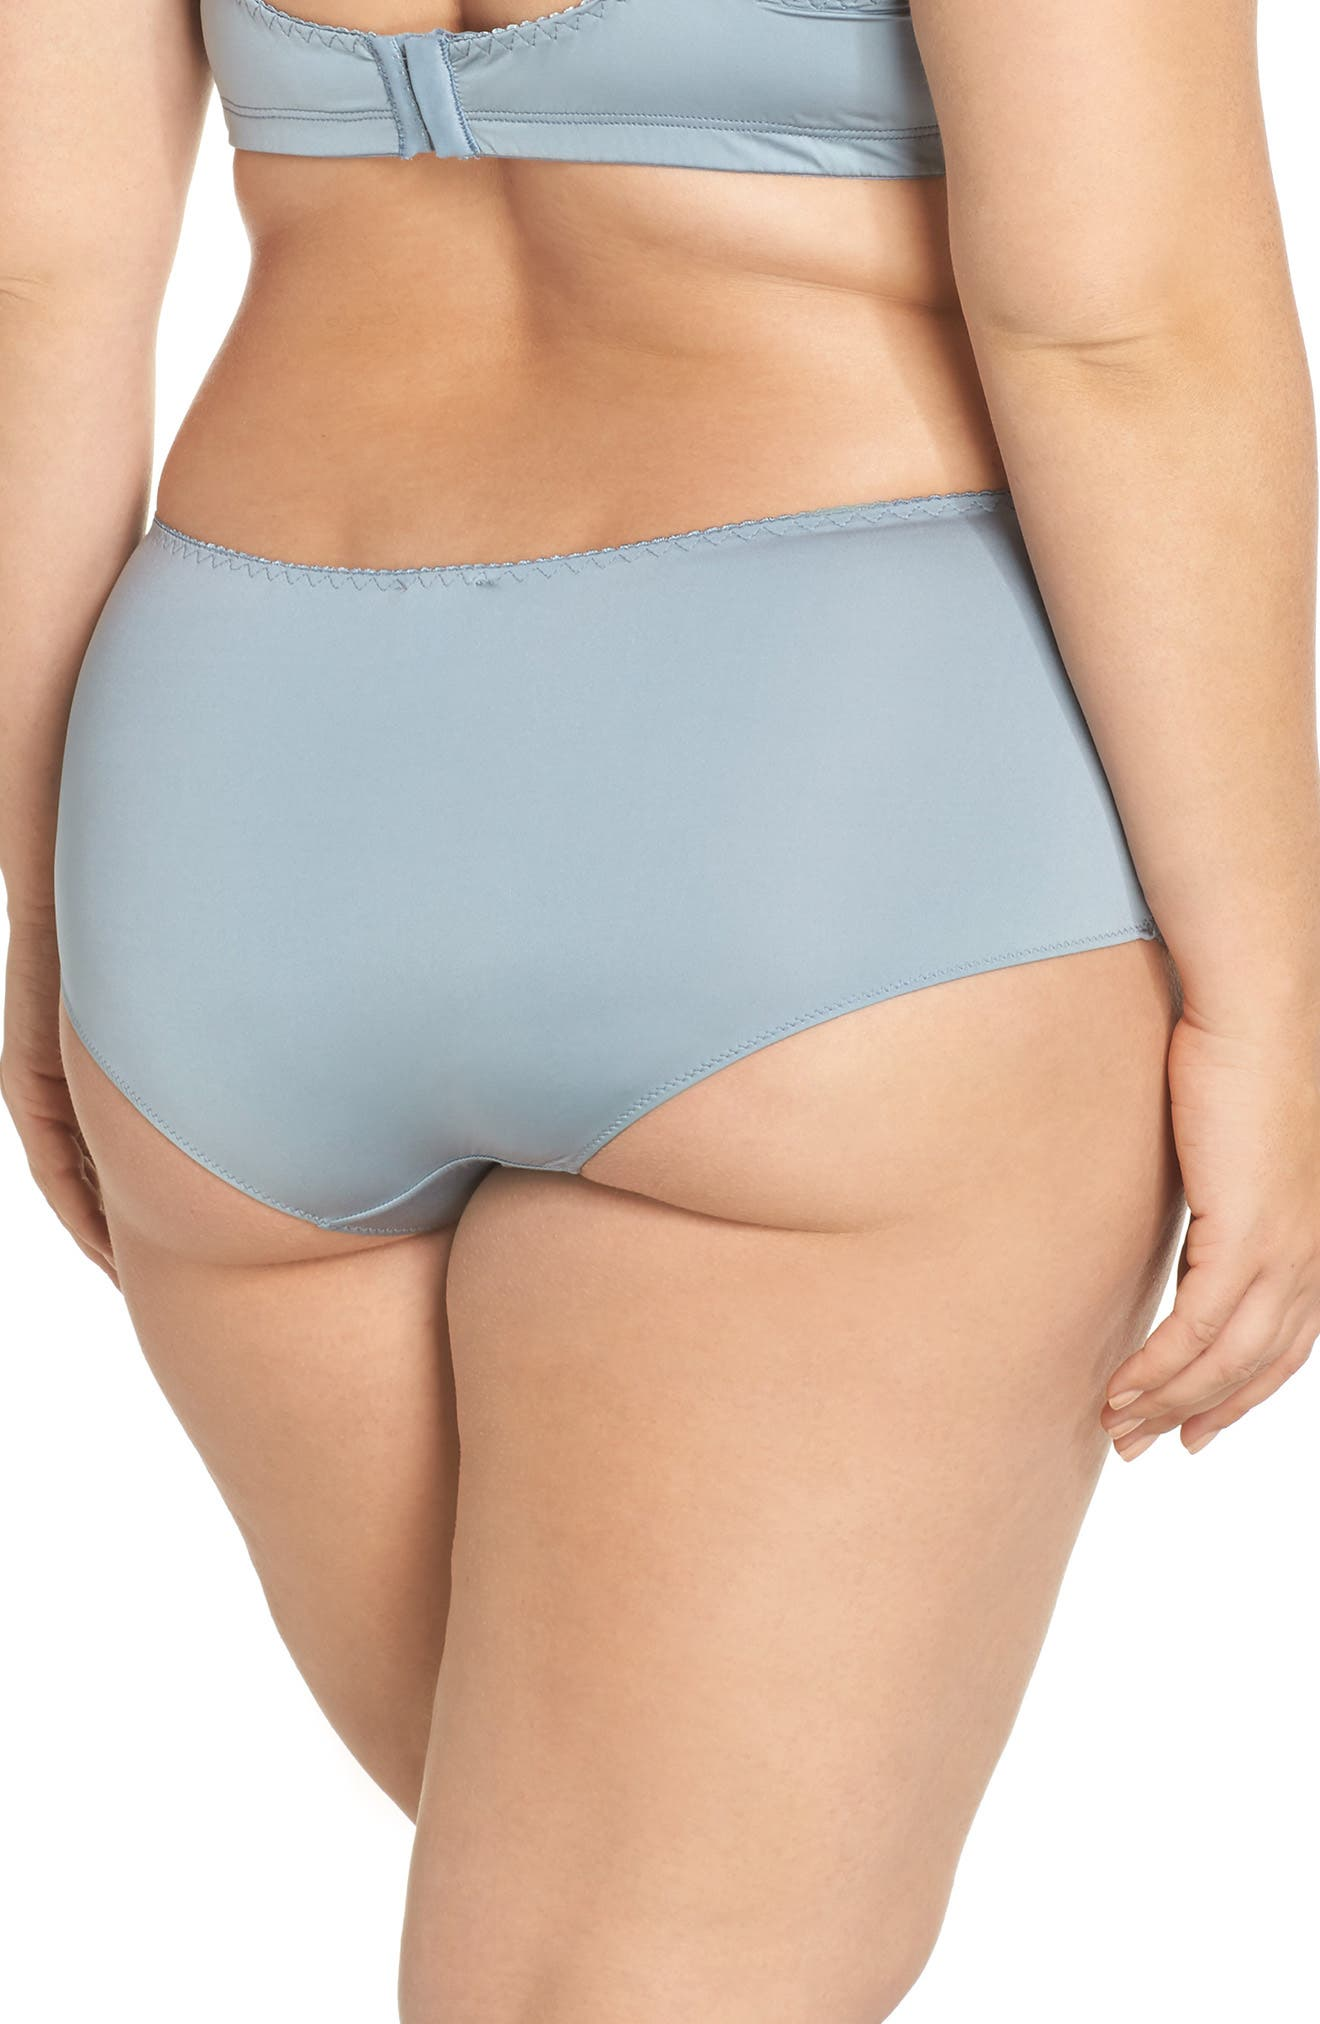 Minoa Low Rise Boyshorts,                             Alternate thumbnail 2, color,                             409